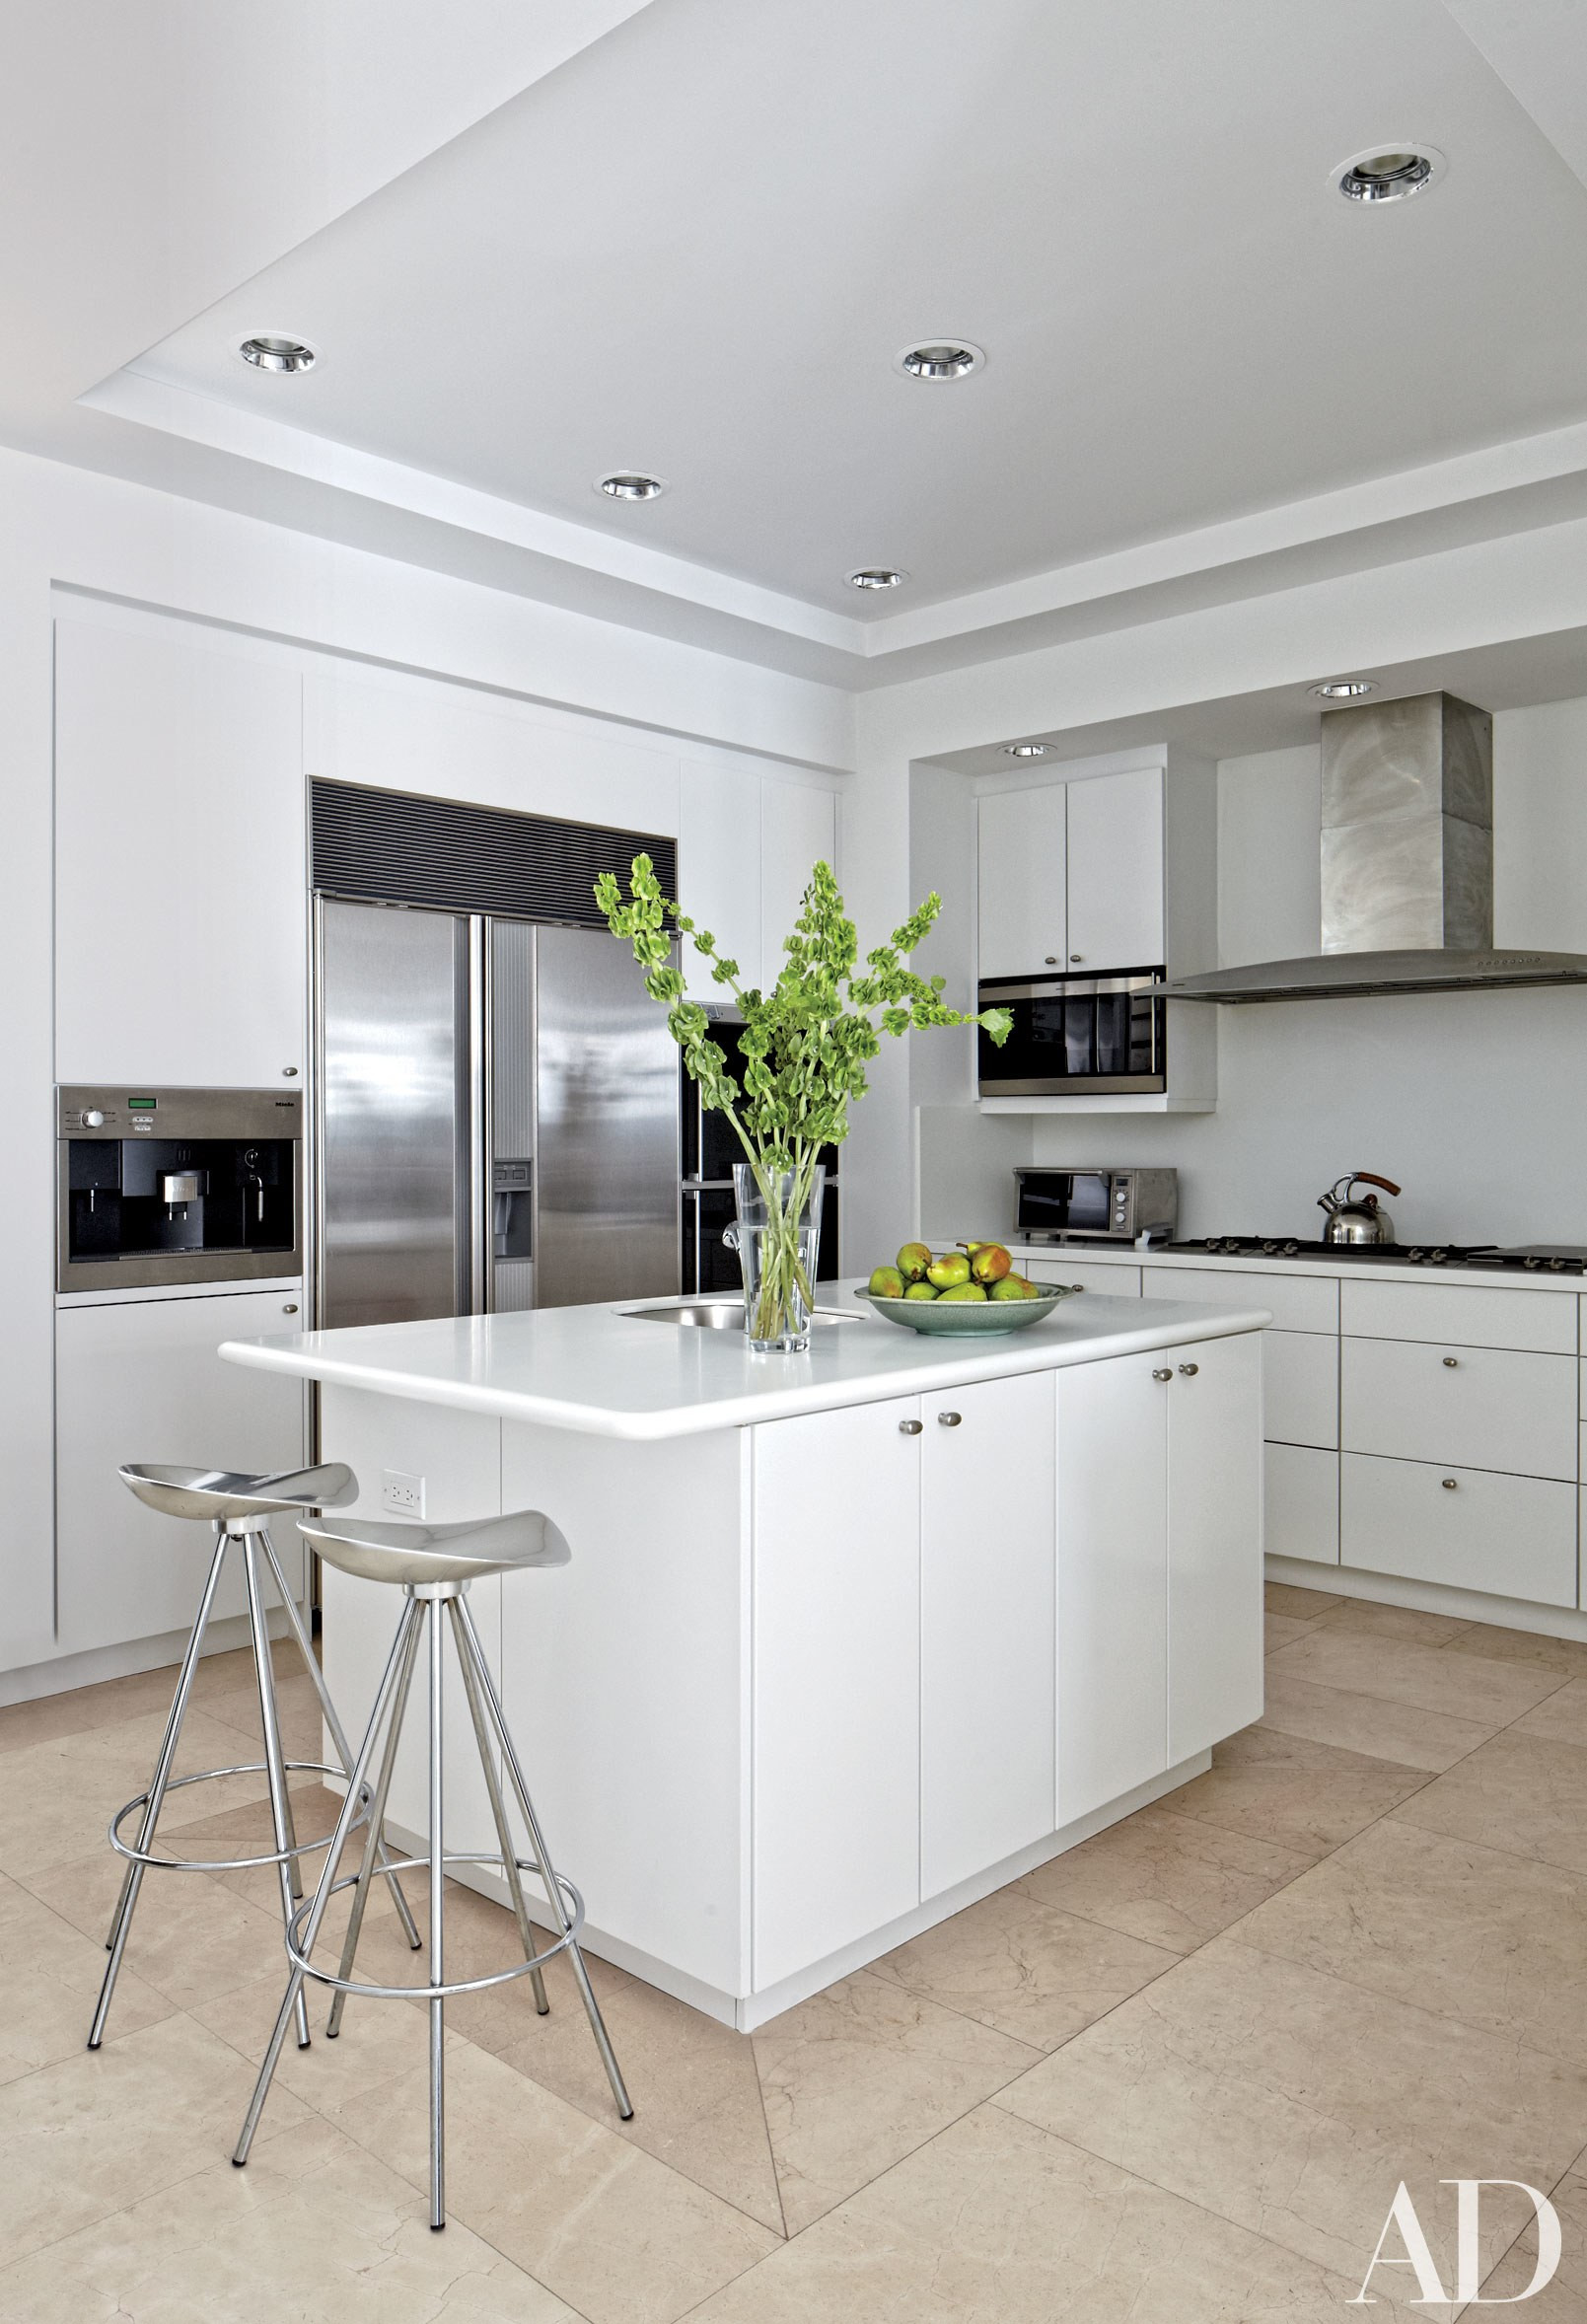 Best ideas about White Kitchen Decor . Save or Pin White Kitchens Design Ideas s Now.